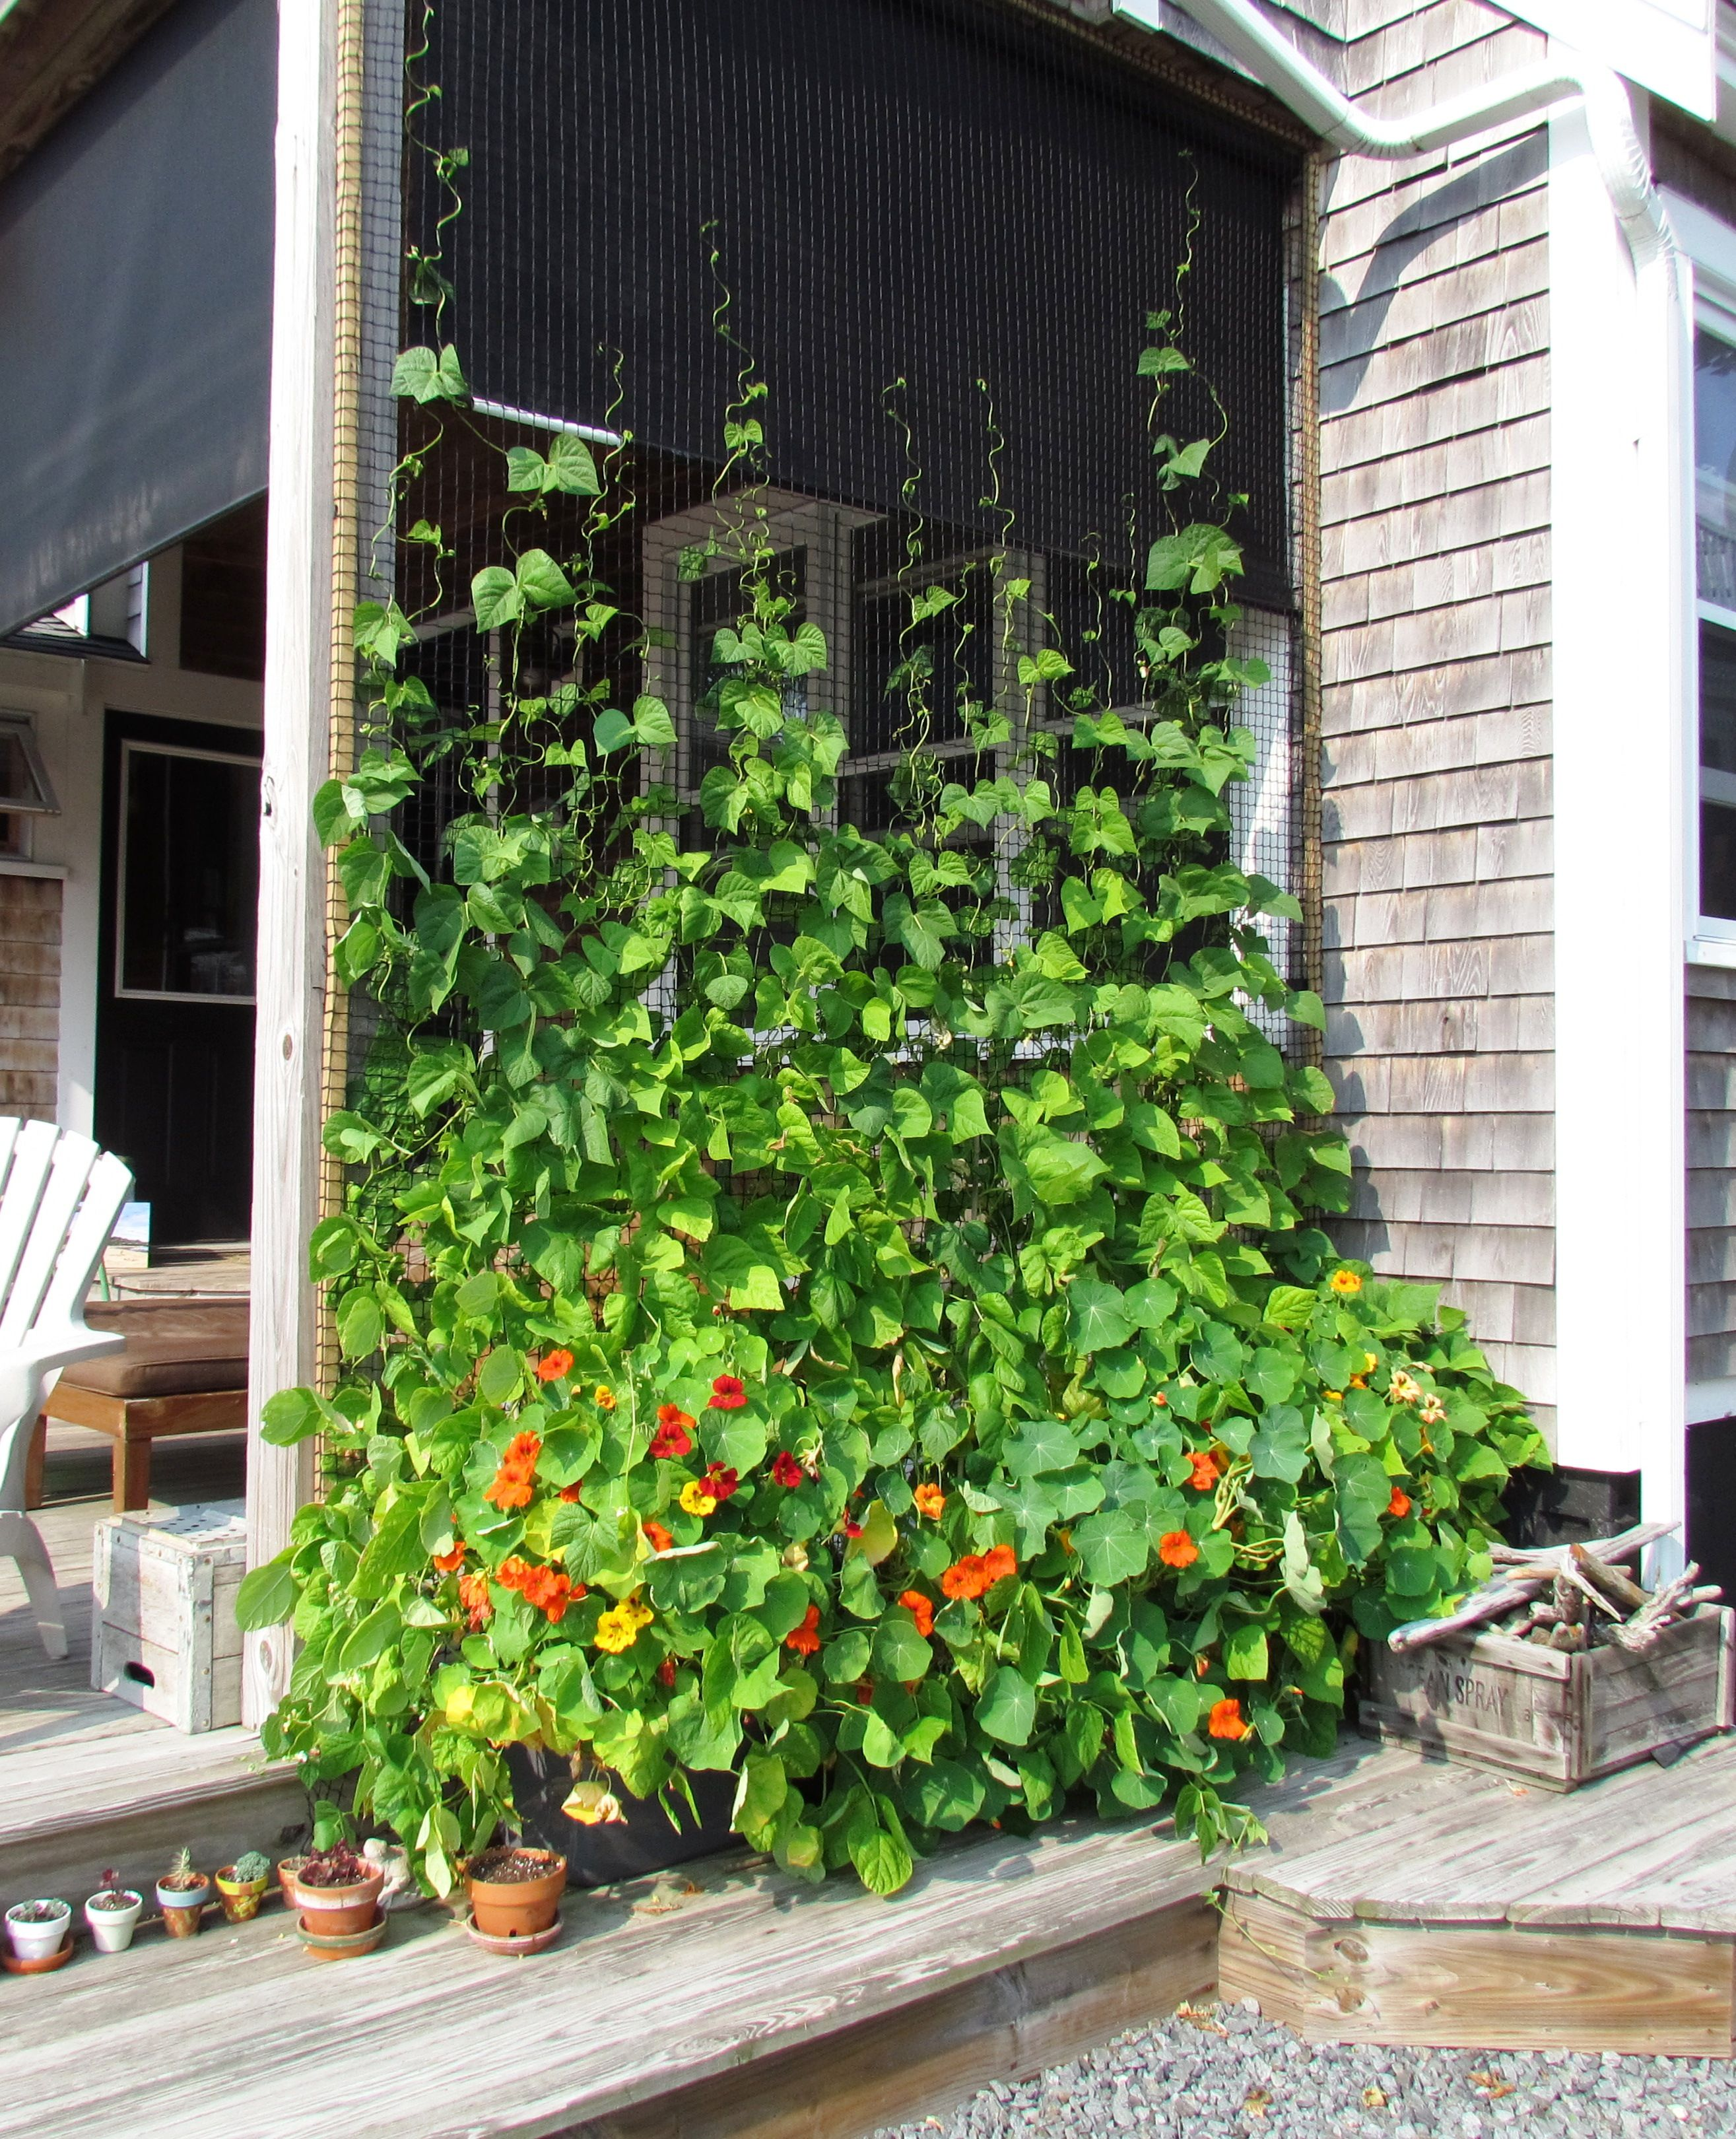 Beans and Nasturtiums growing out of four plastic bins vertically onto black fishnet - shade and privacy